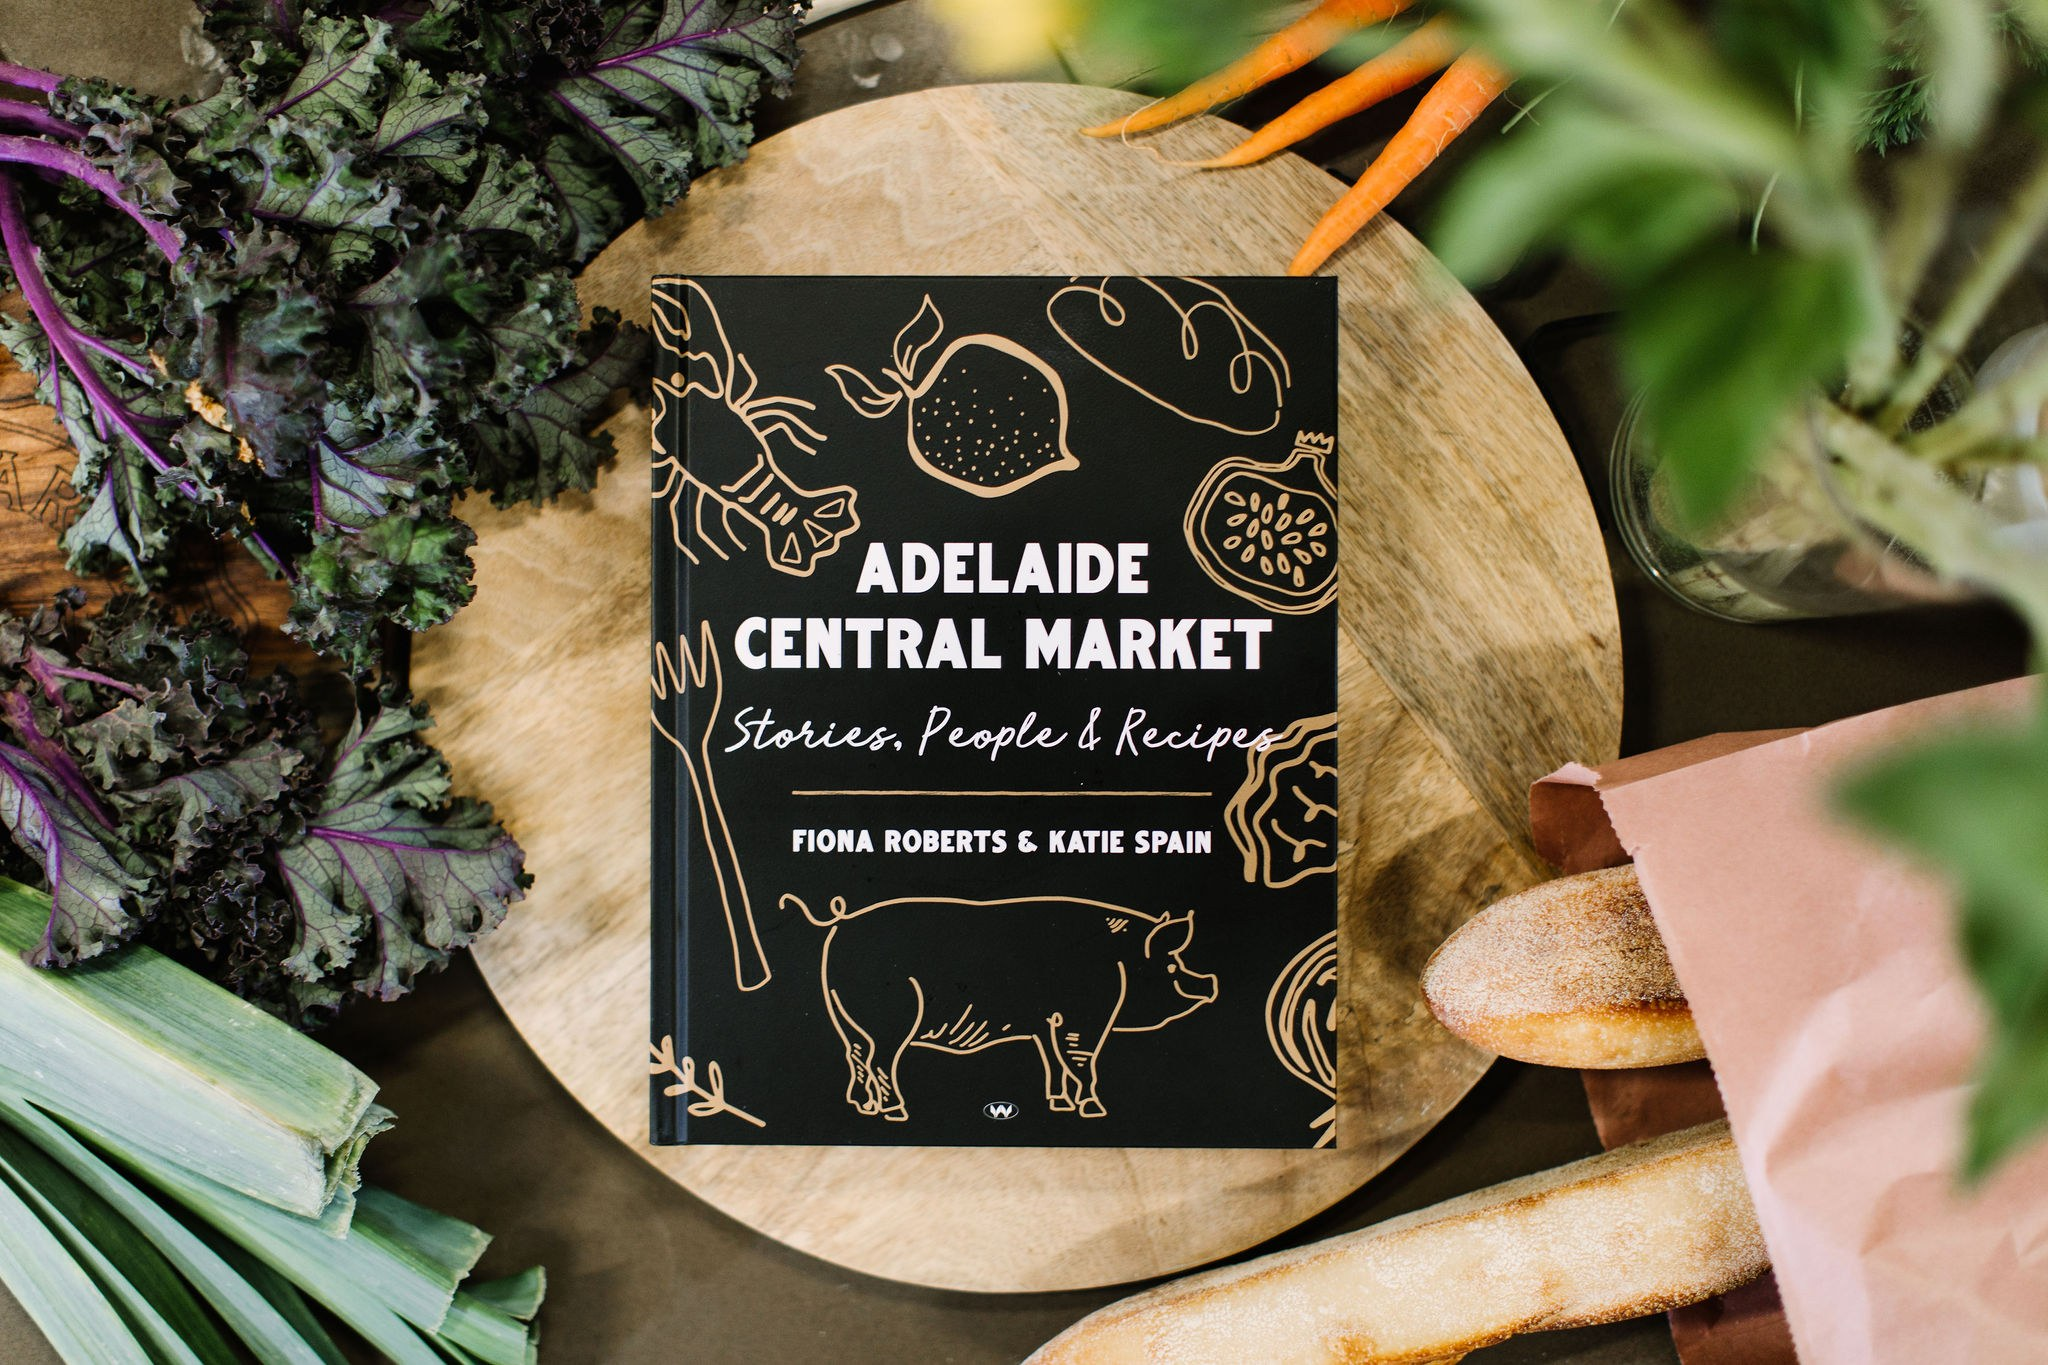 Adelaide central market stories people and recipes book